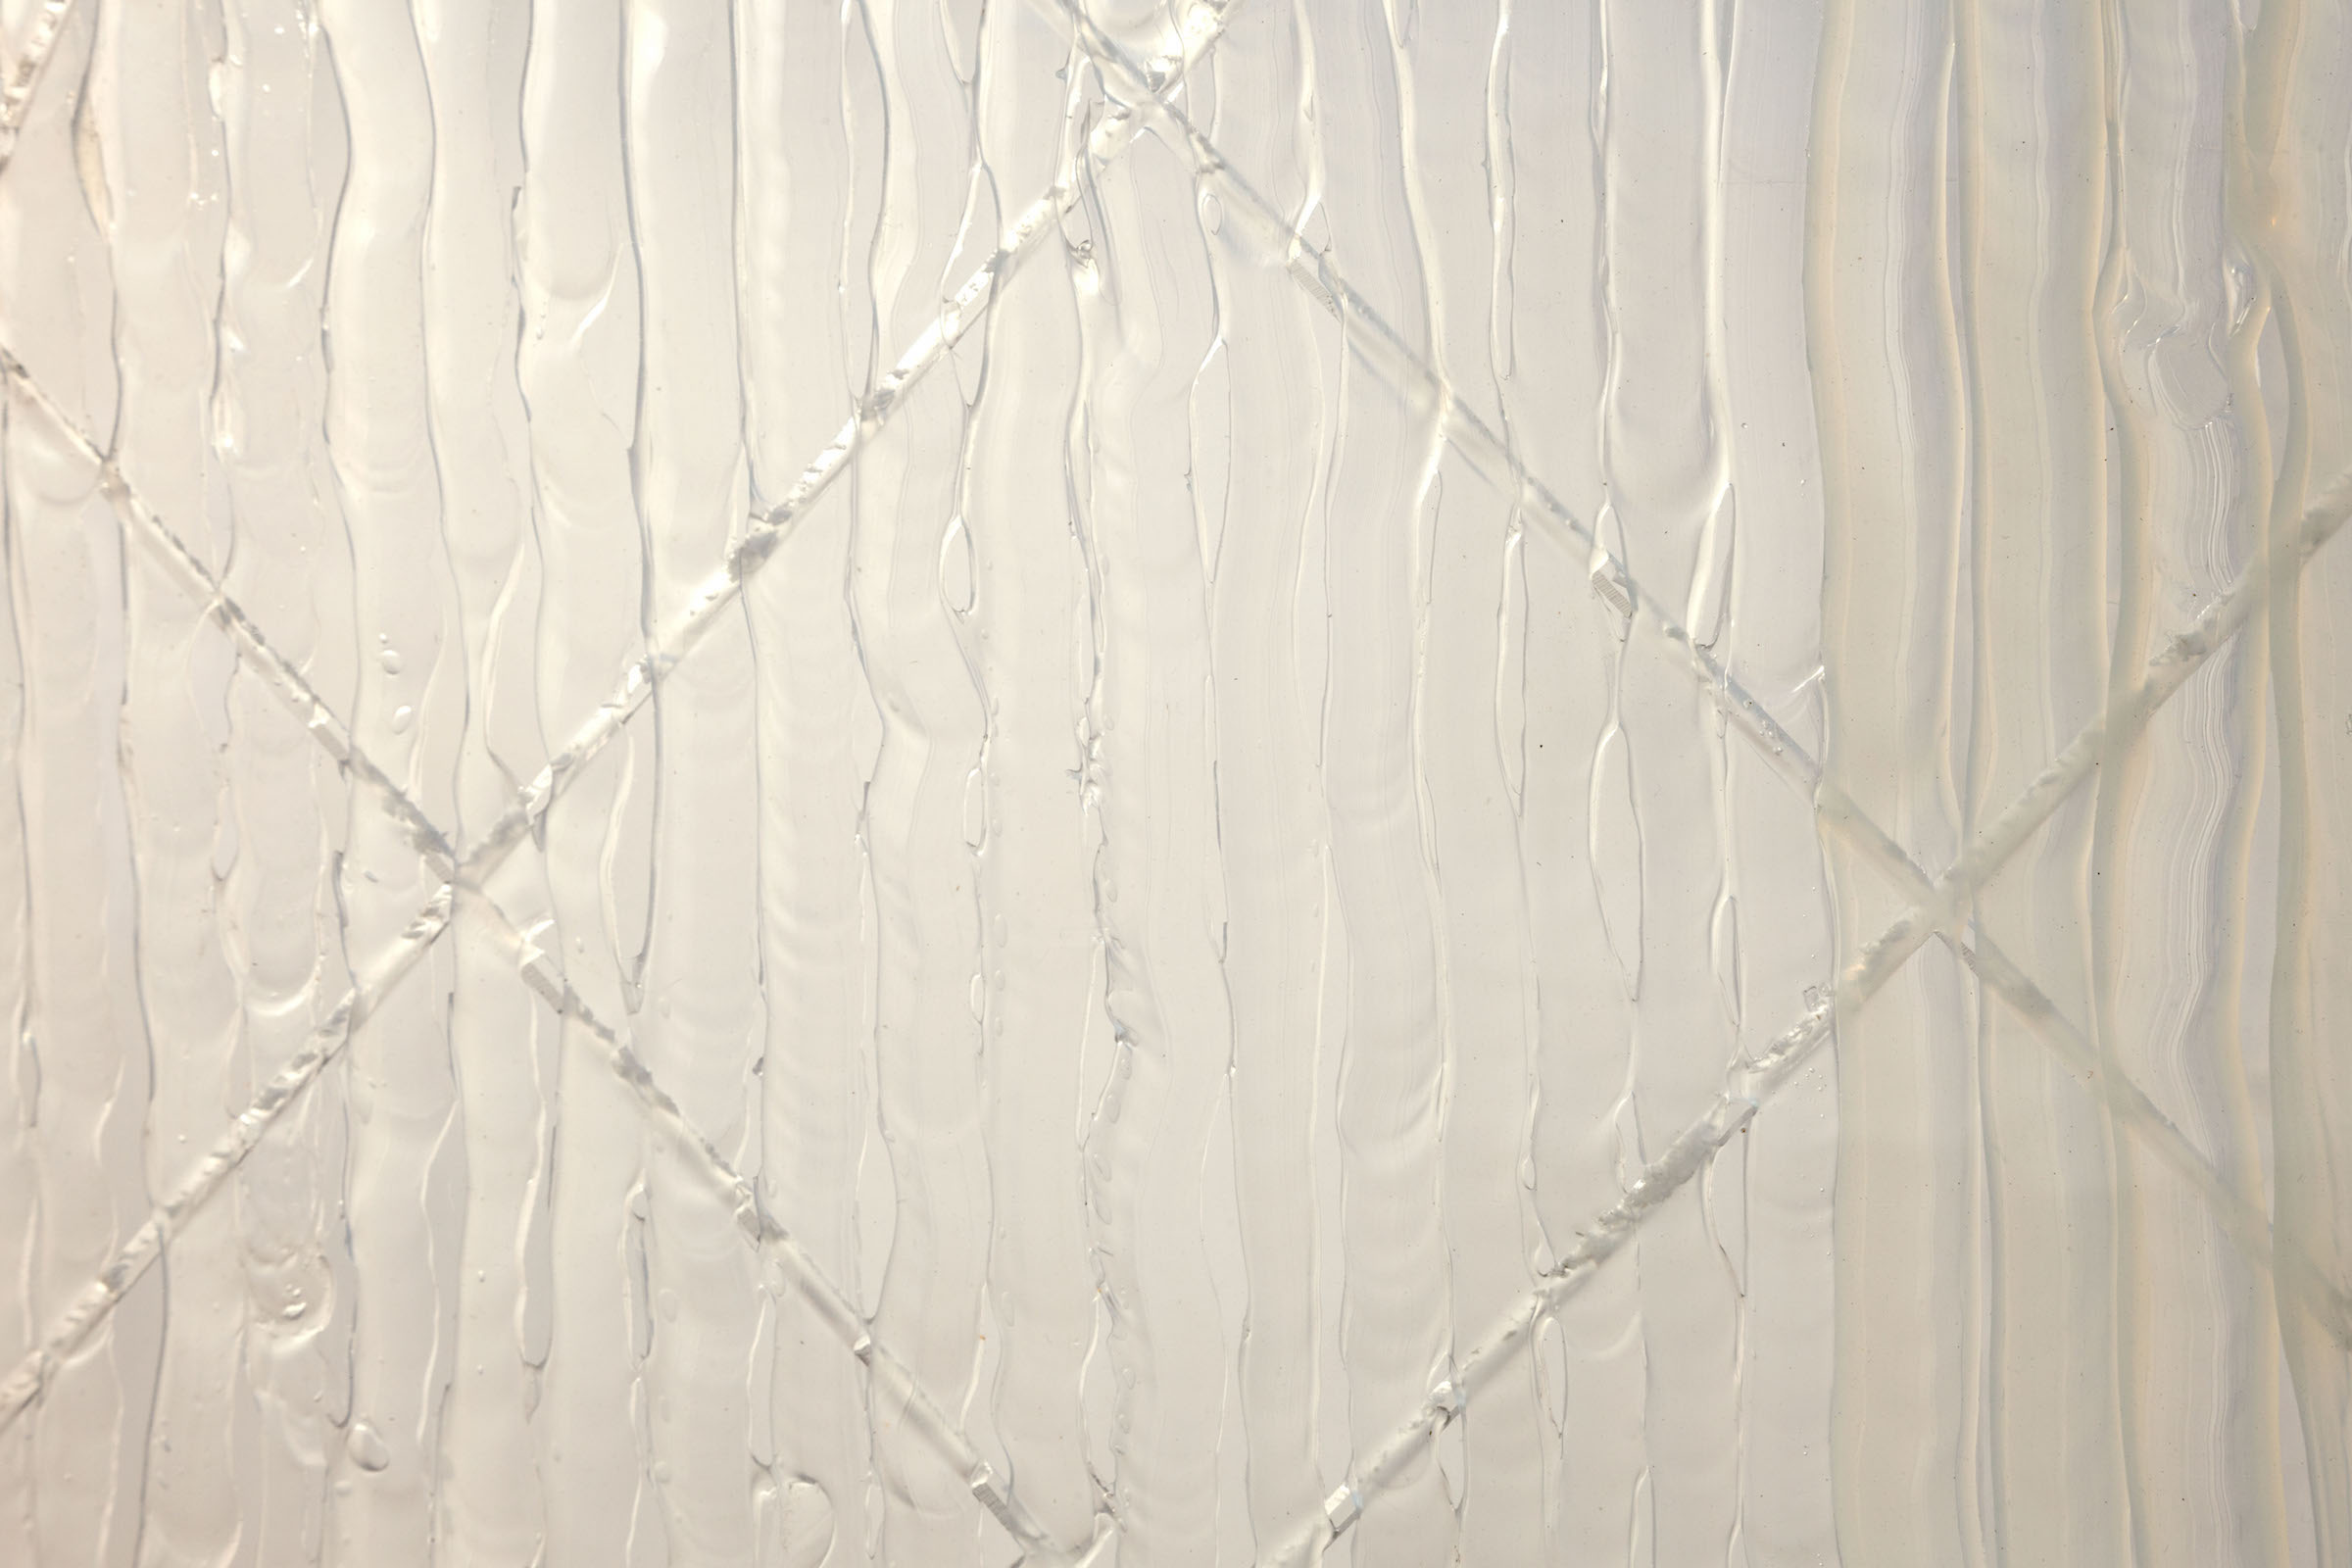 Natalie Labriola, Cleanroom for Psychic Protection  (detail), 2015 - 2016, modified,used ISO-Level 8 cleanroom,89 x 96 x 144 in